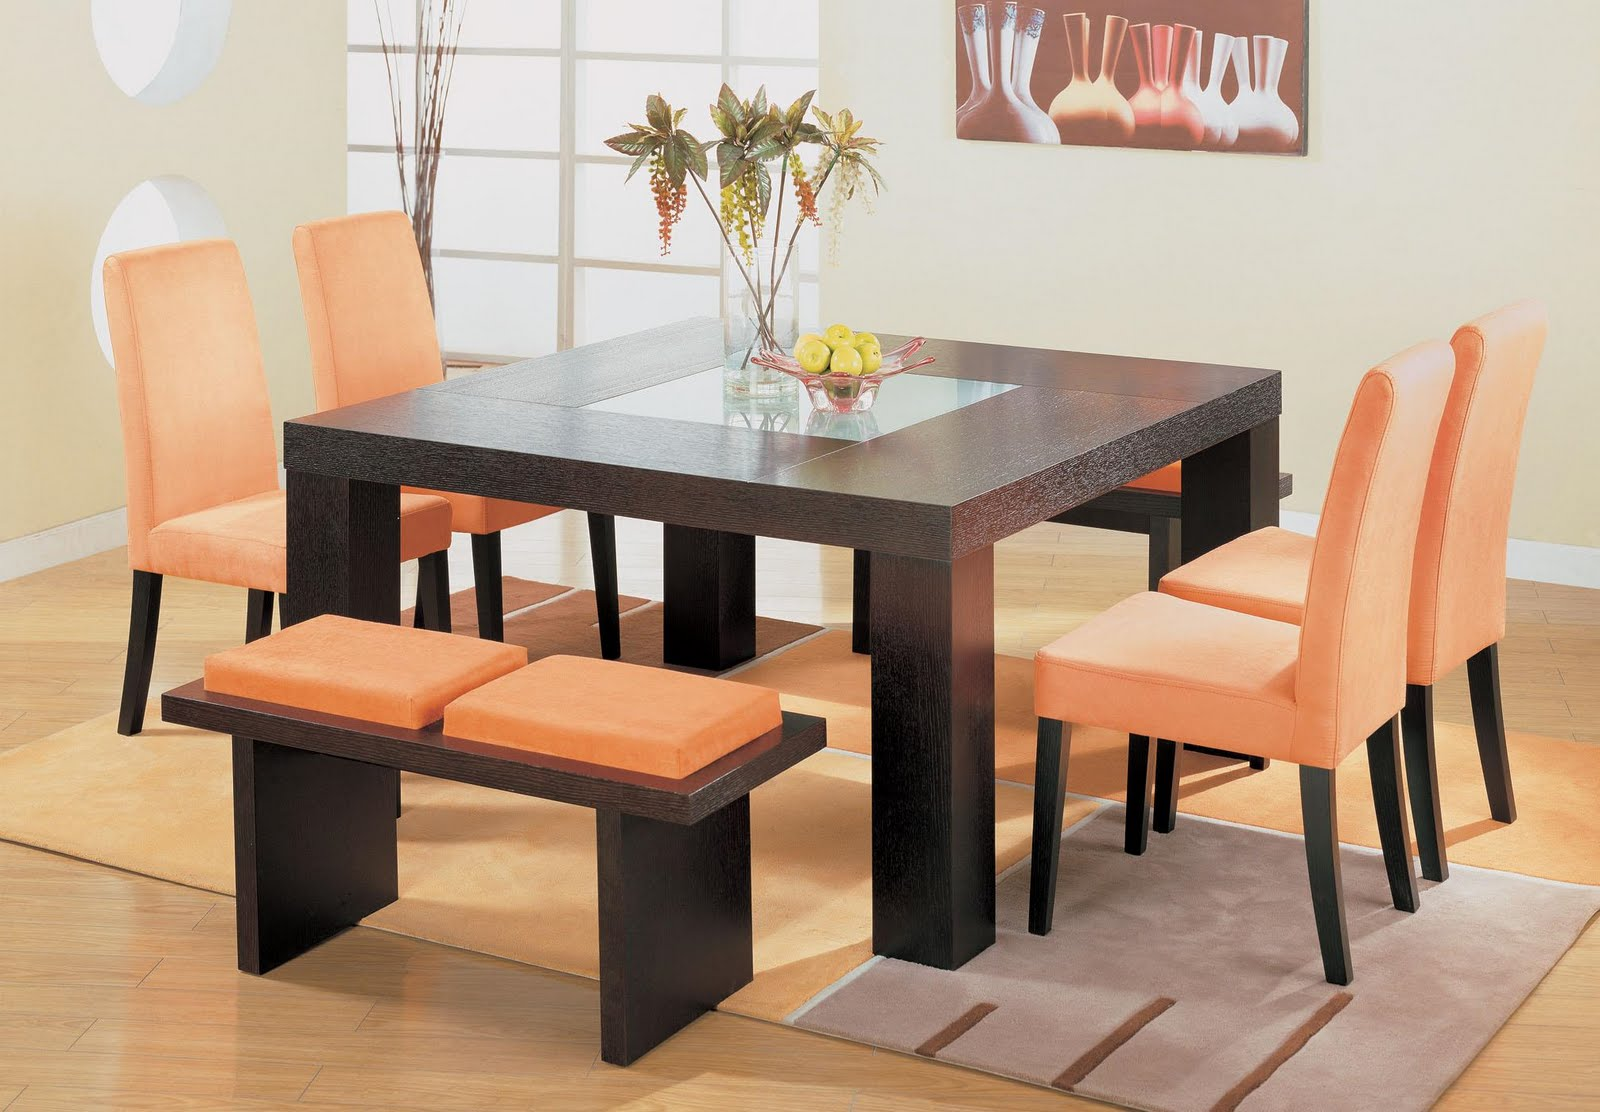 Square Dining Table Design for Your Home Décor